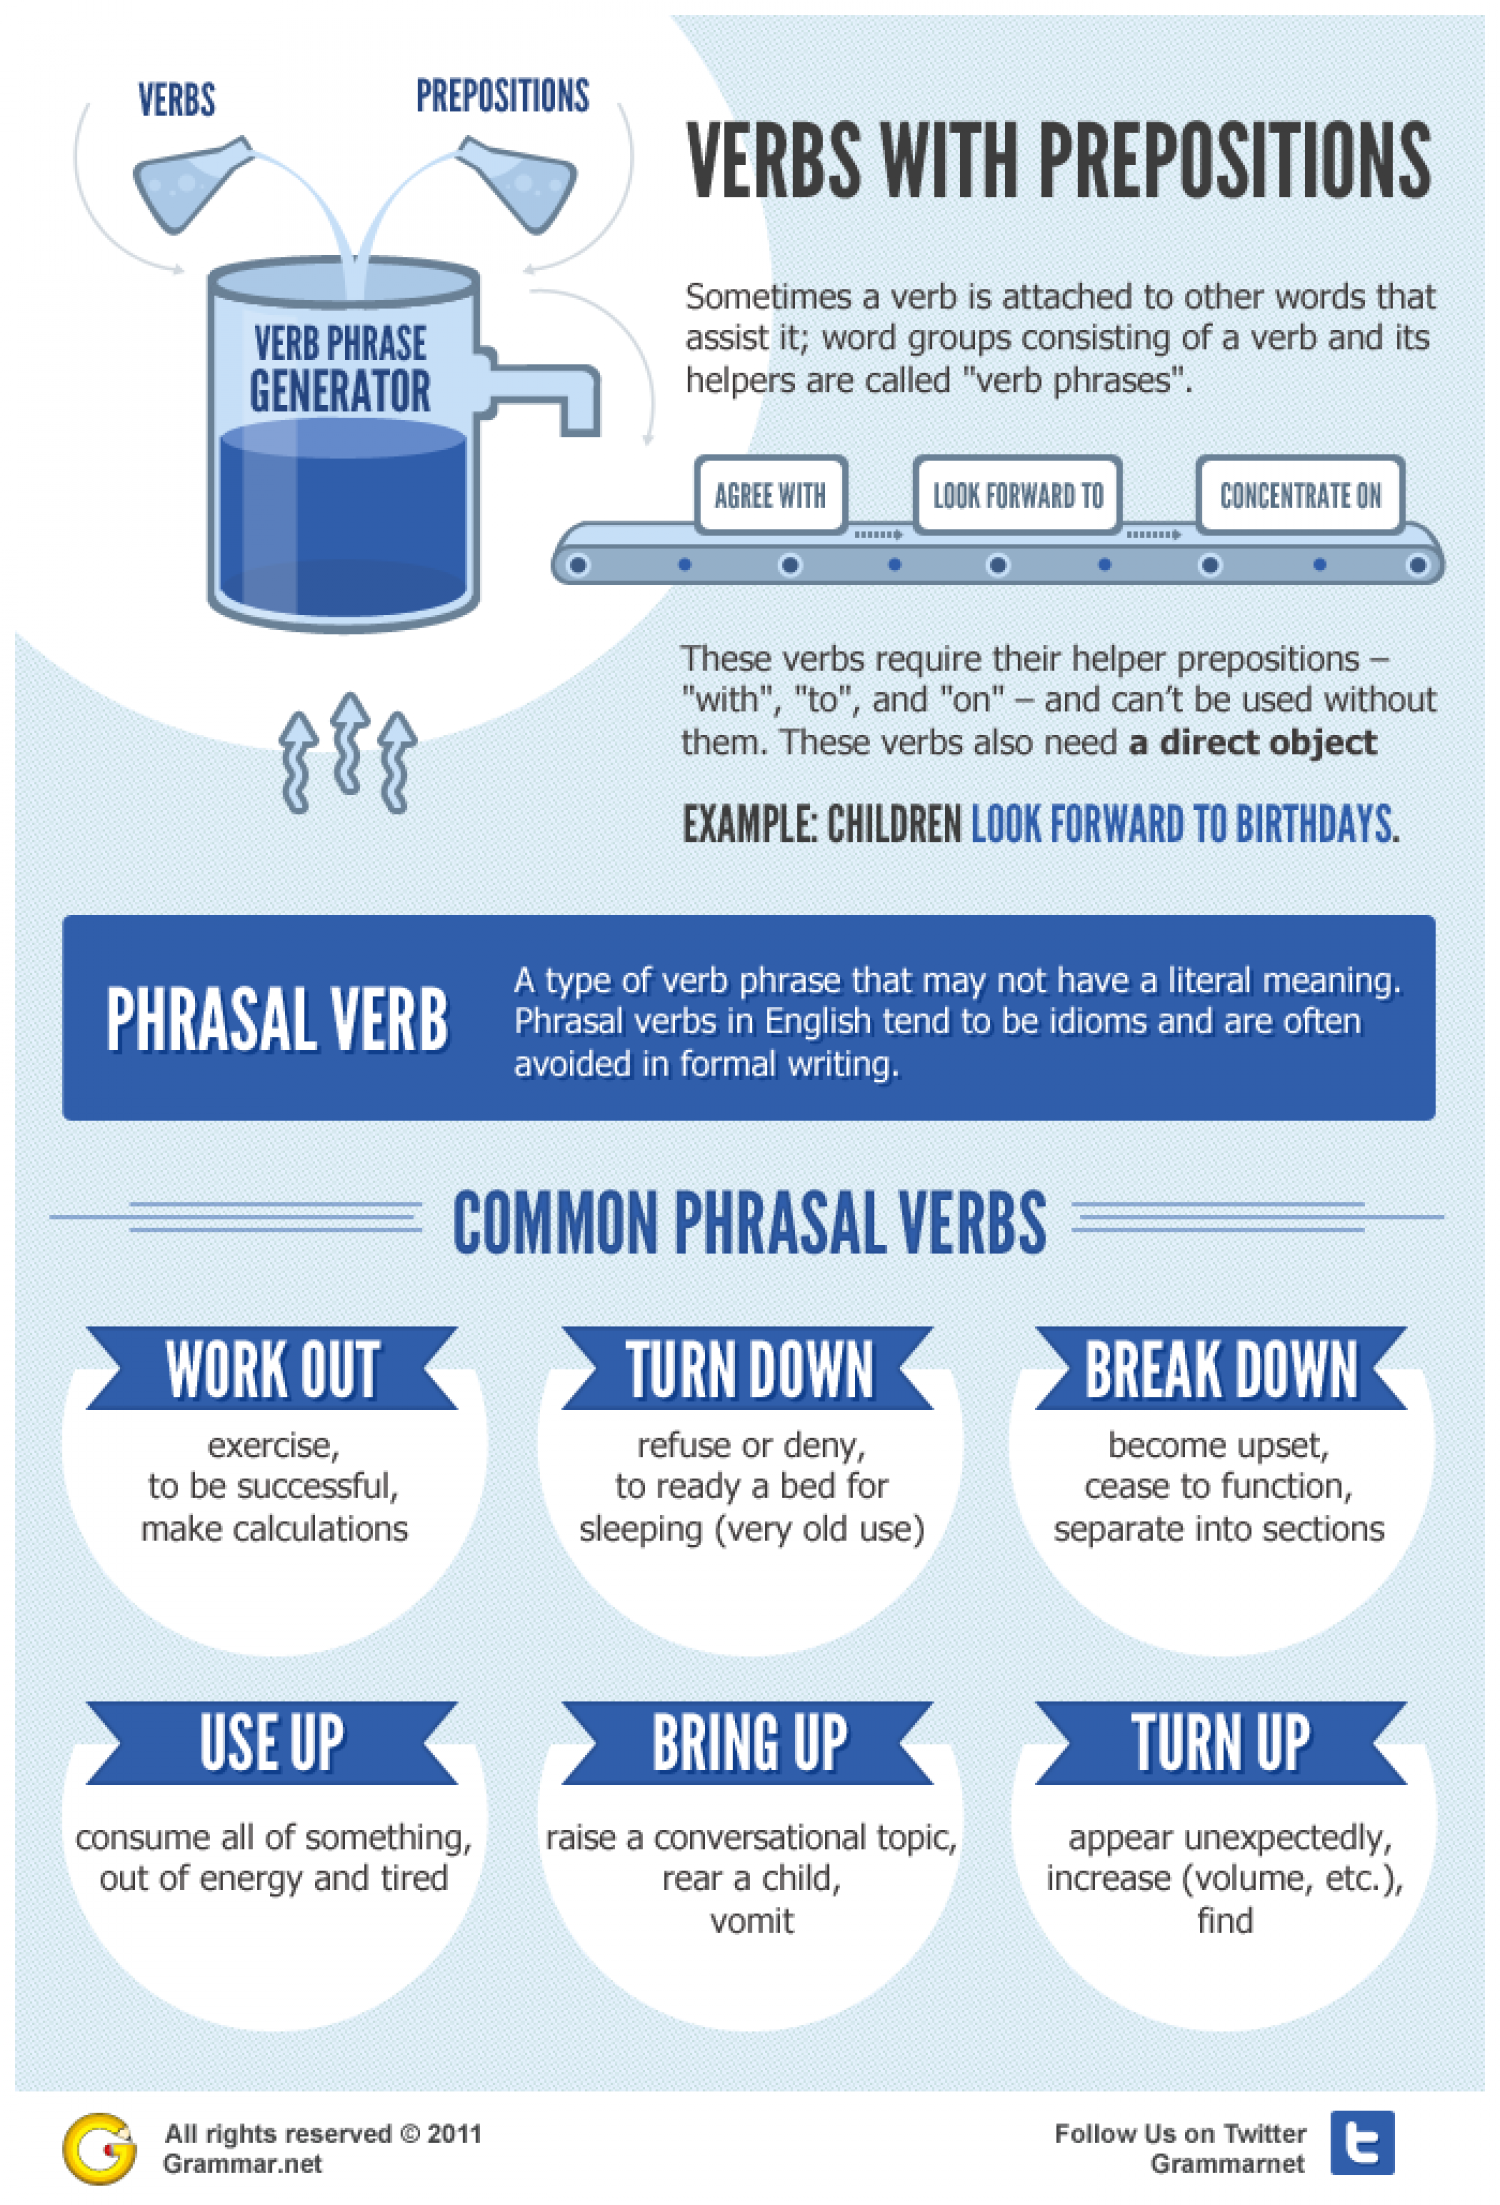 Verbs and their prepositions  Infographic